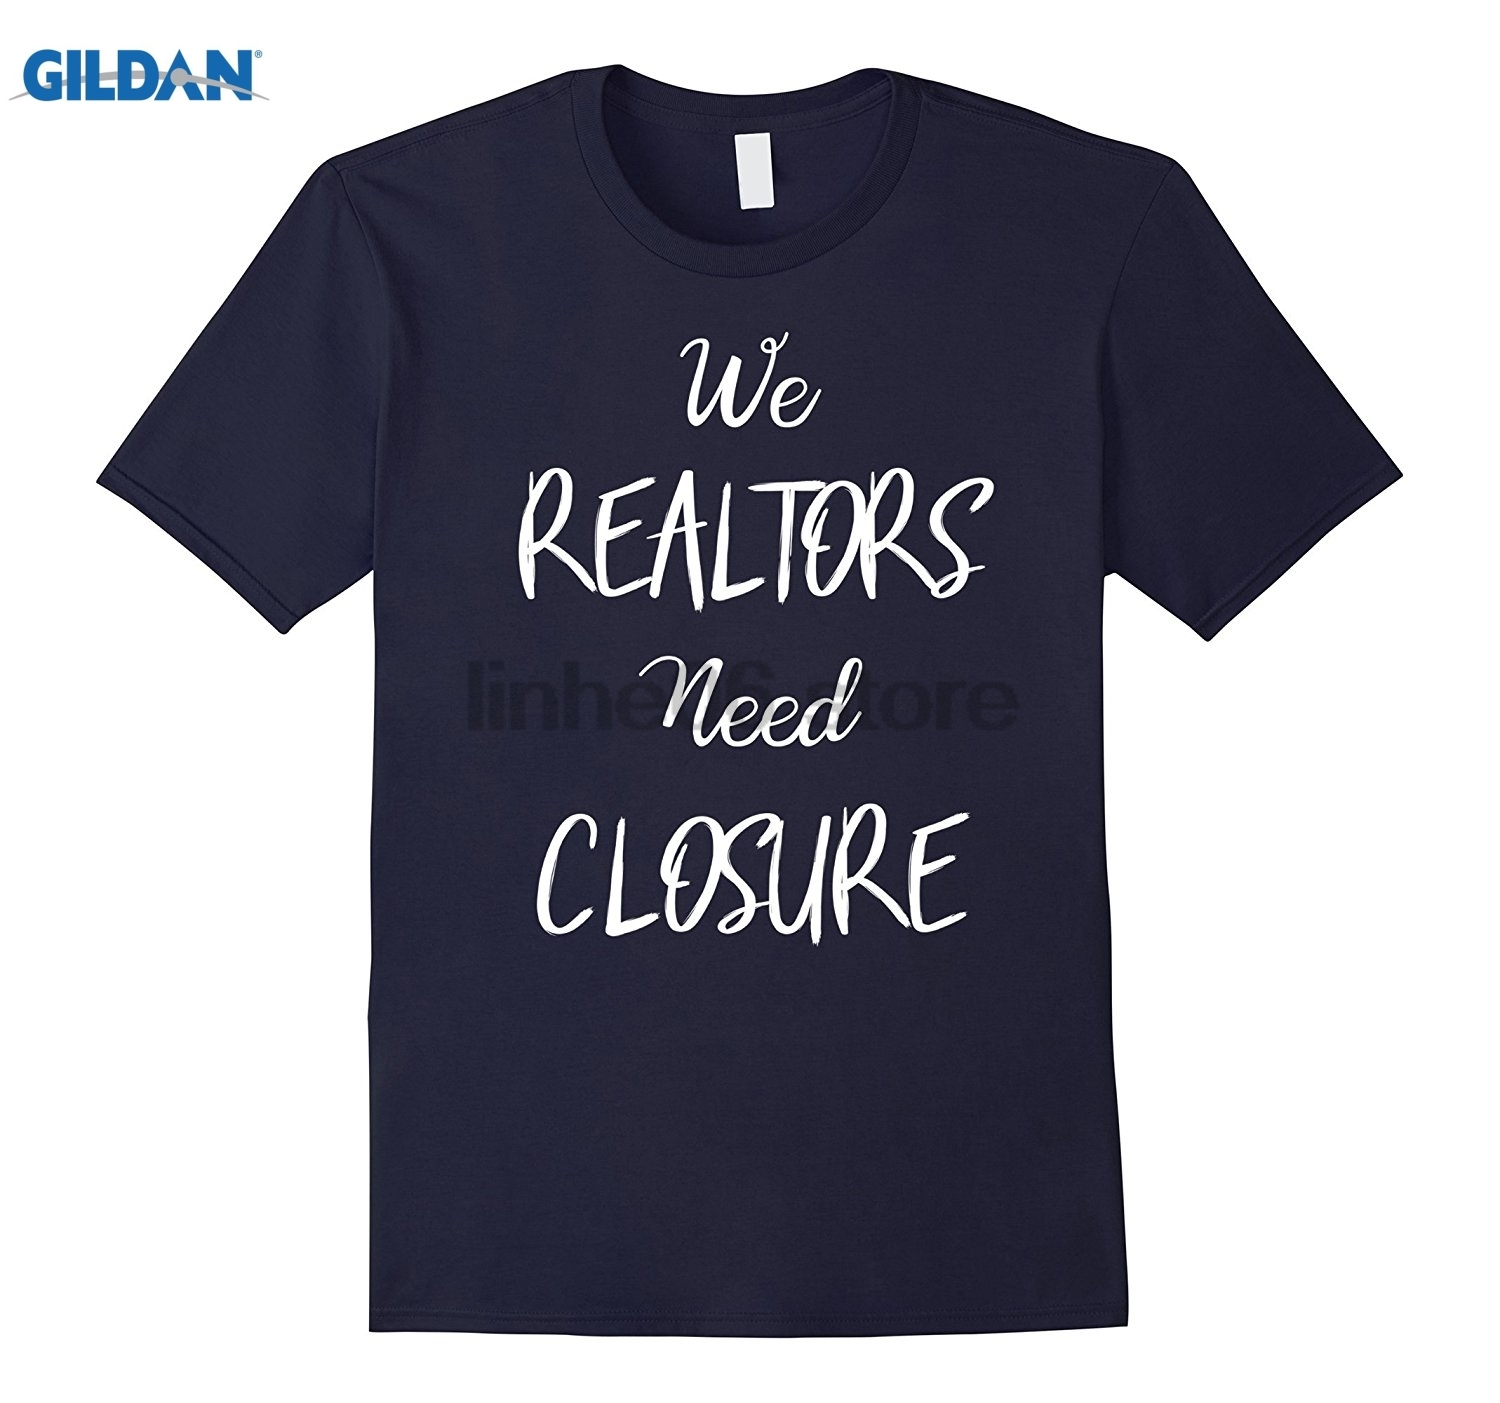 GILDAN Real Estate T-Shirt Realtor Tee Real Estate Agent T-Shirt Round neck short sleeve ...